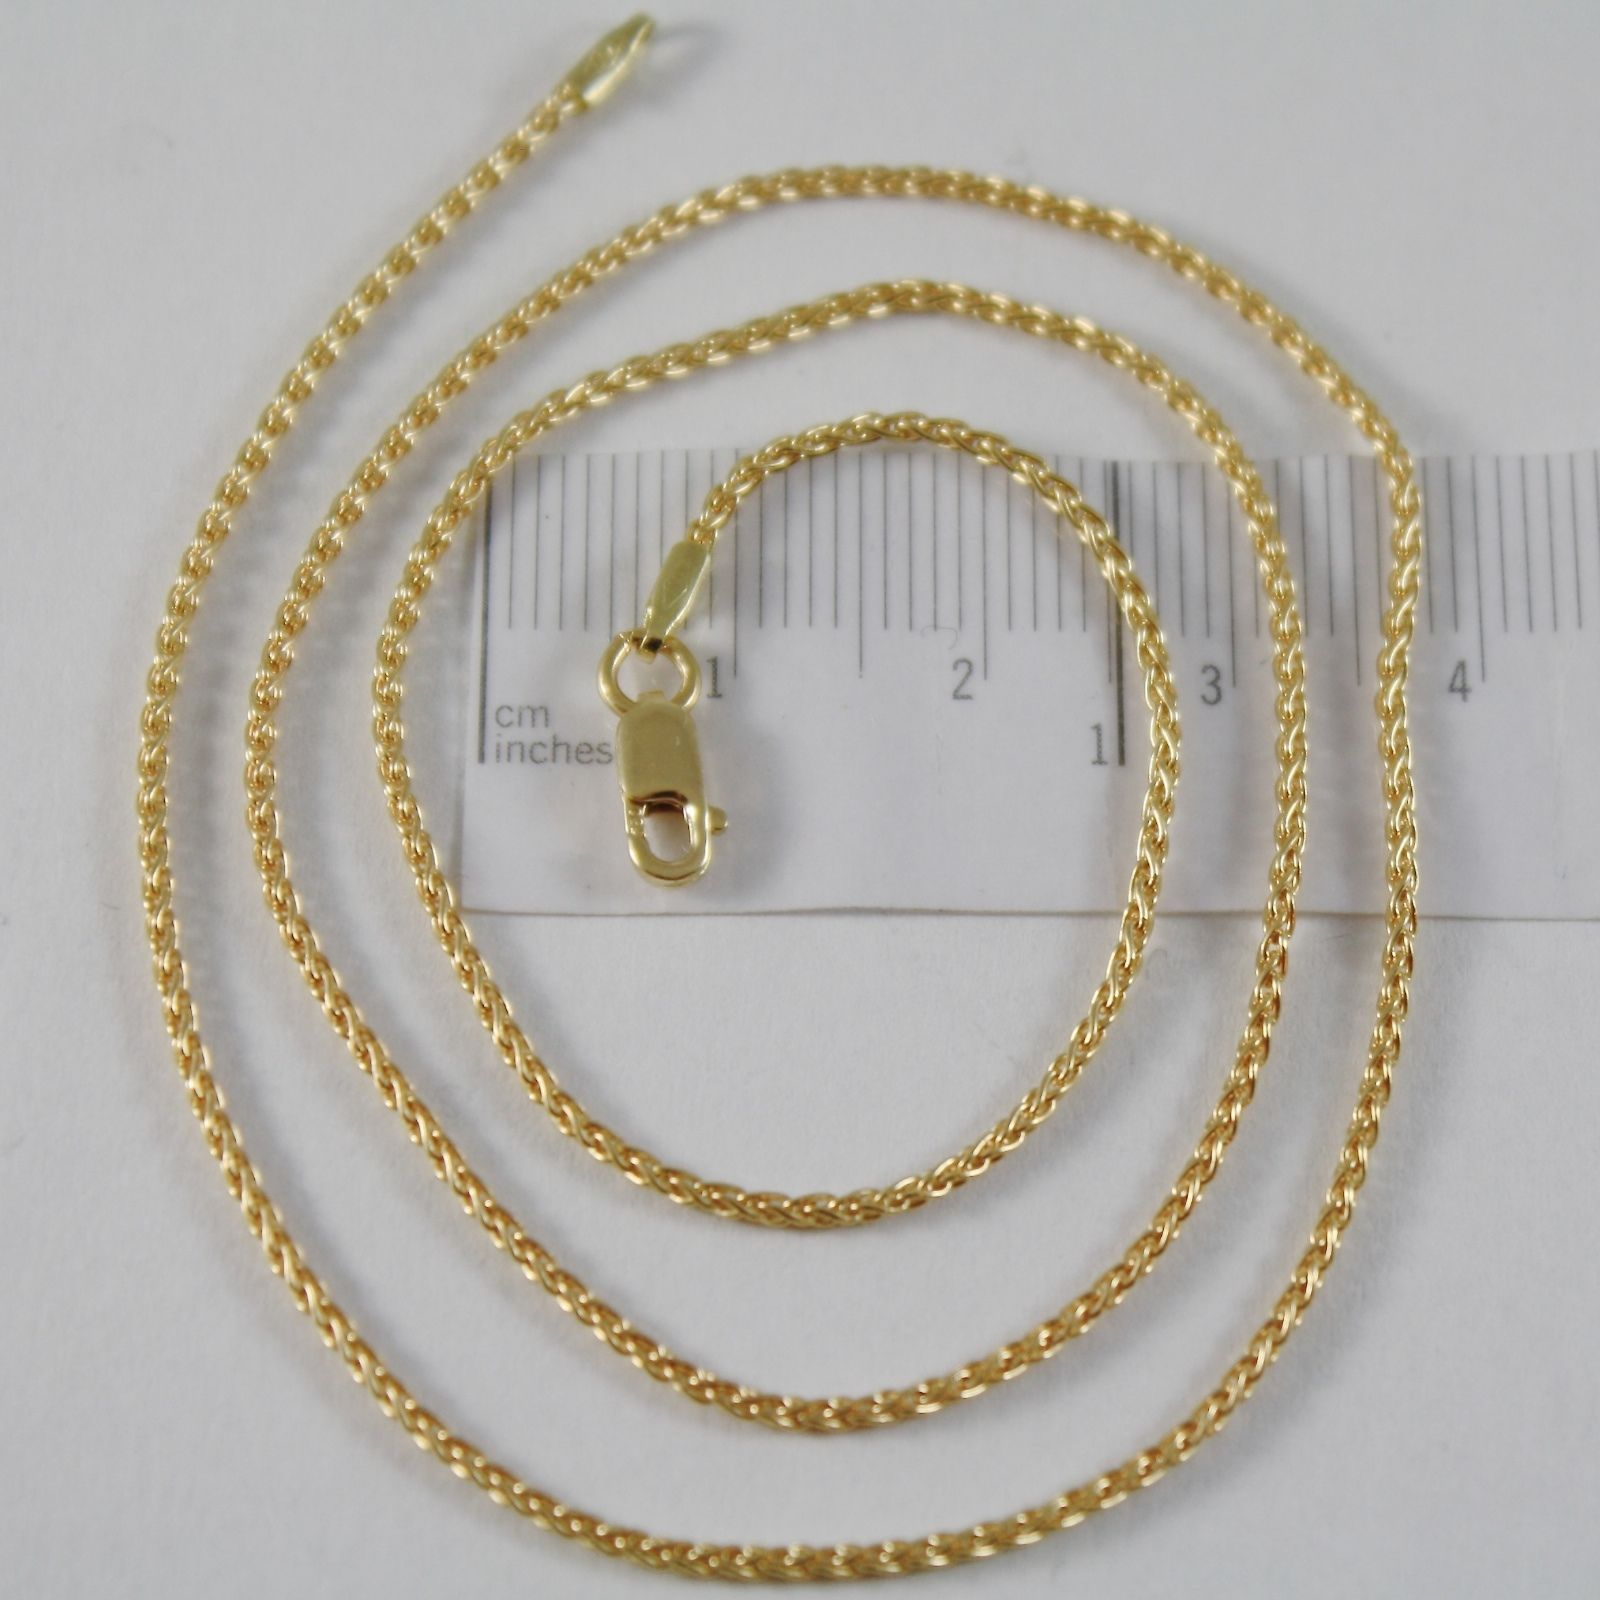 SOLID 18K YELLOW GOLD SPIGA WHEAT EAR CHAIN 18 INCHES, 1.5 MM, MADE IN ITALY